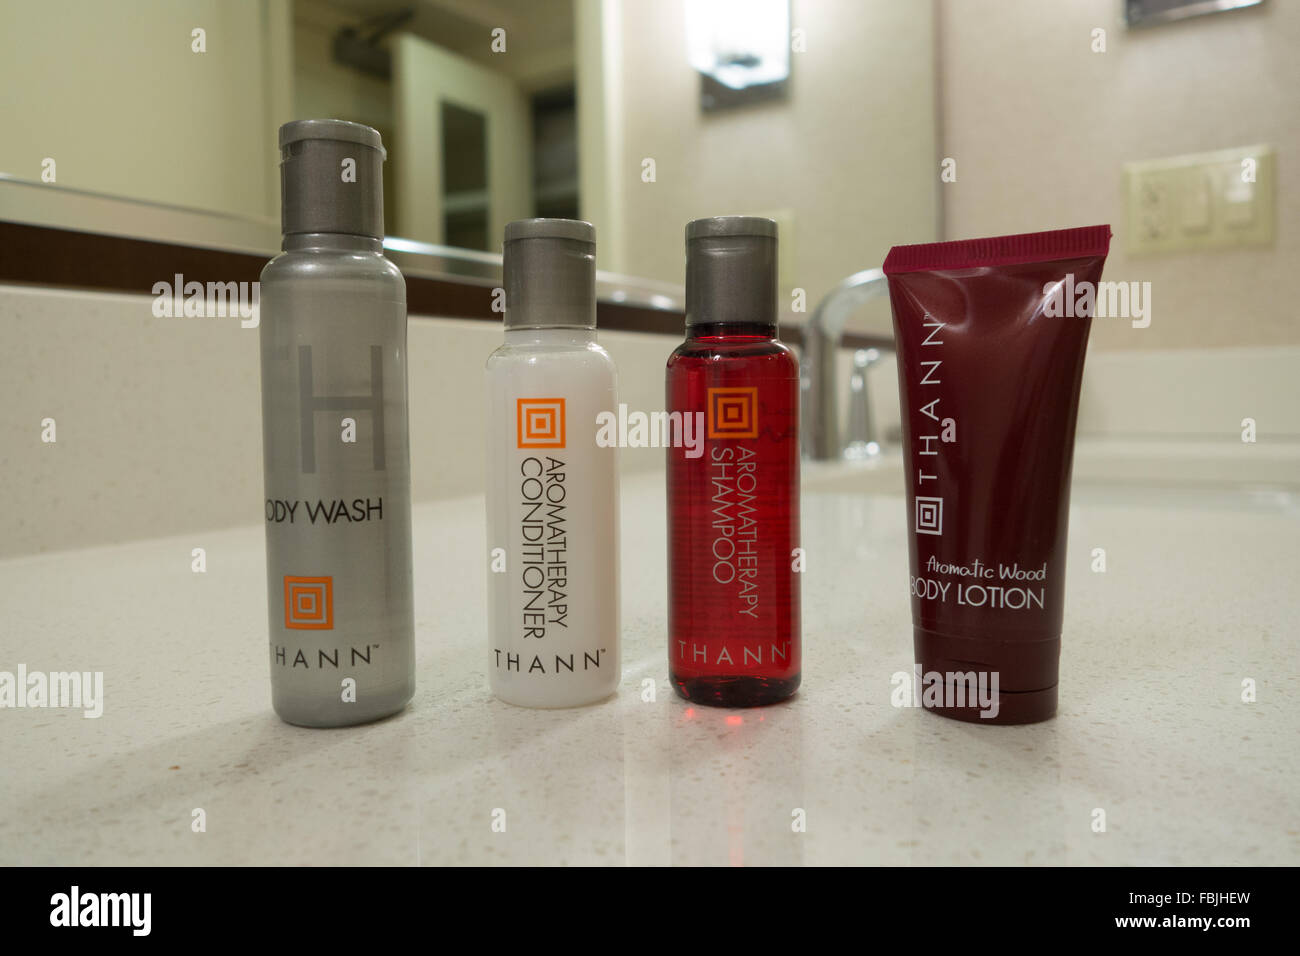 Hotel Guest Toiletries travel size Shampoo Conditioner Lotion Body Wash - Stock Image